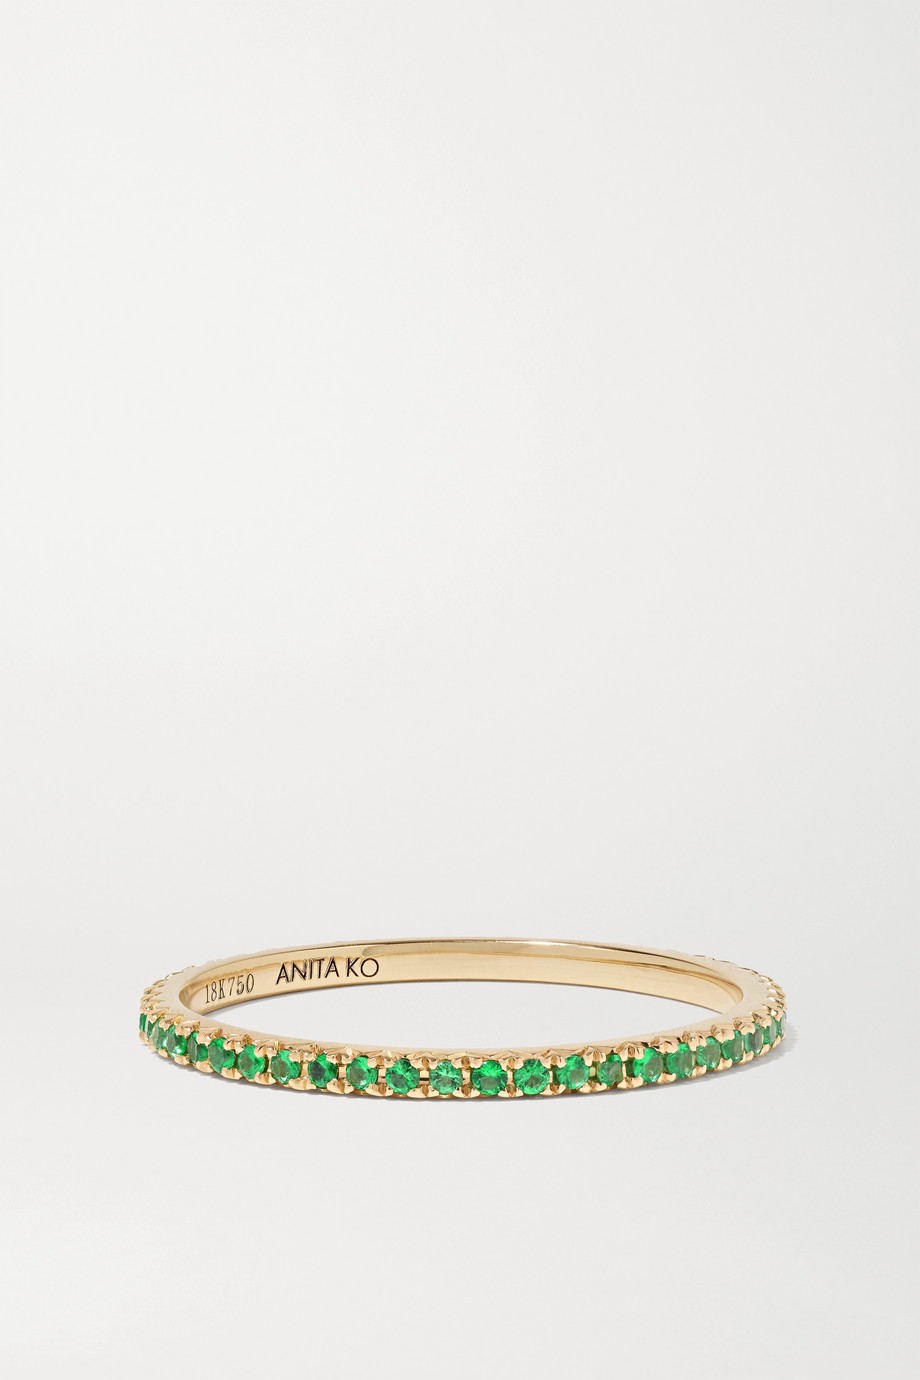 Anita Ko 18-karat gold emerald ring